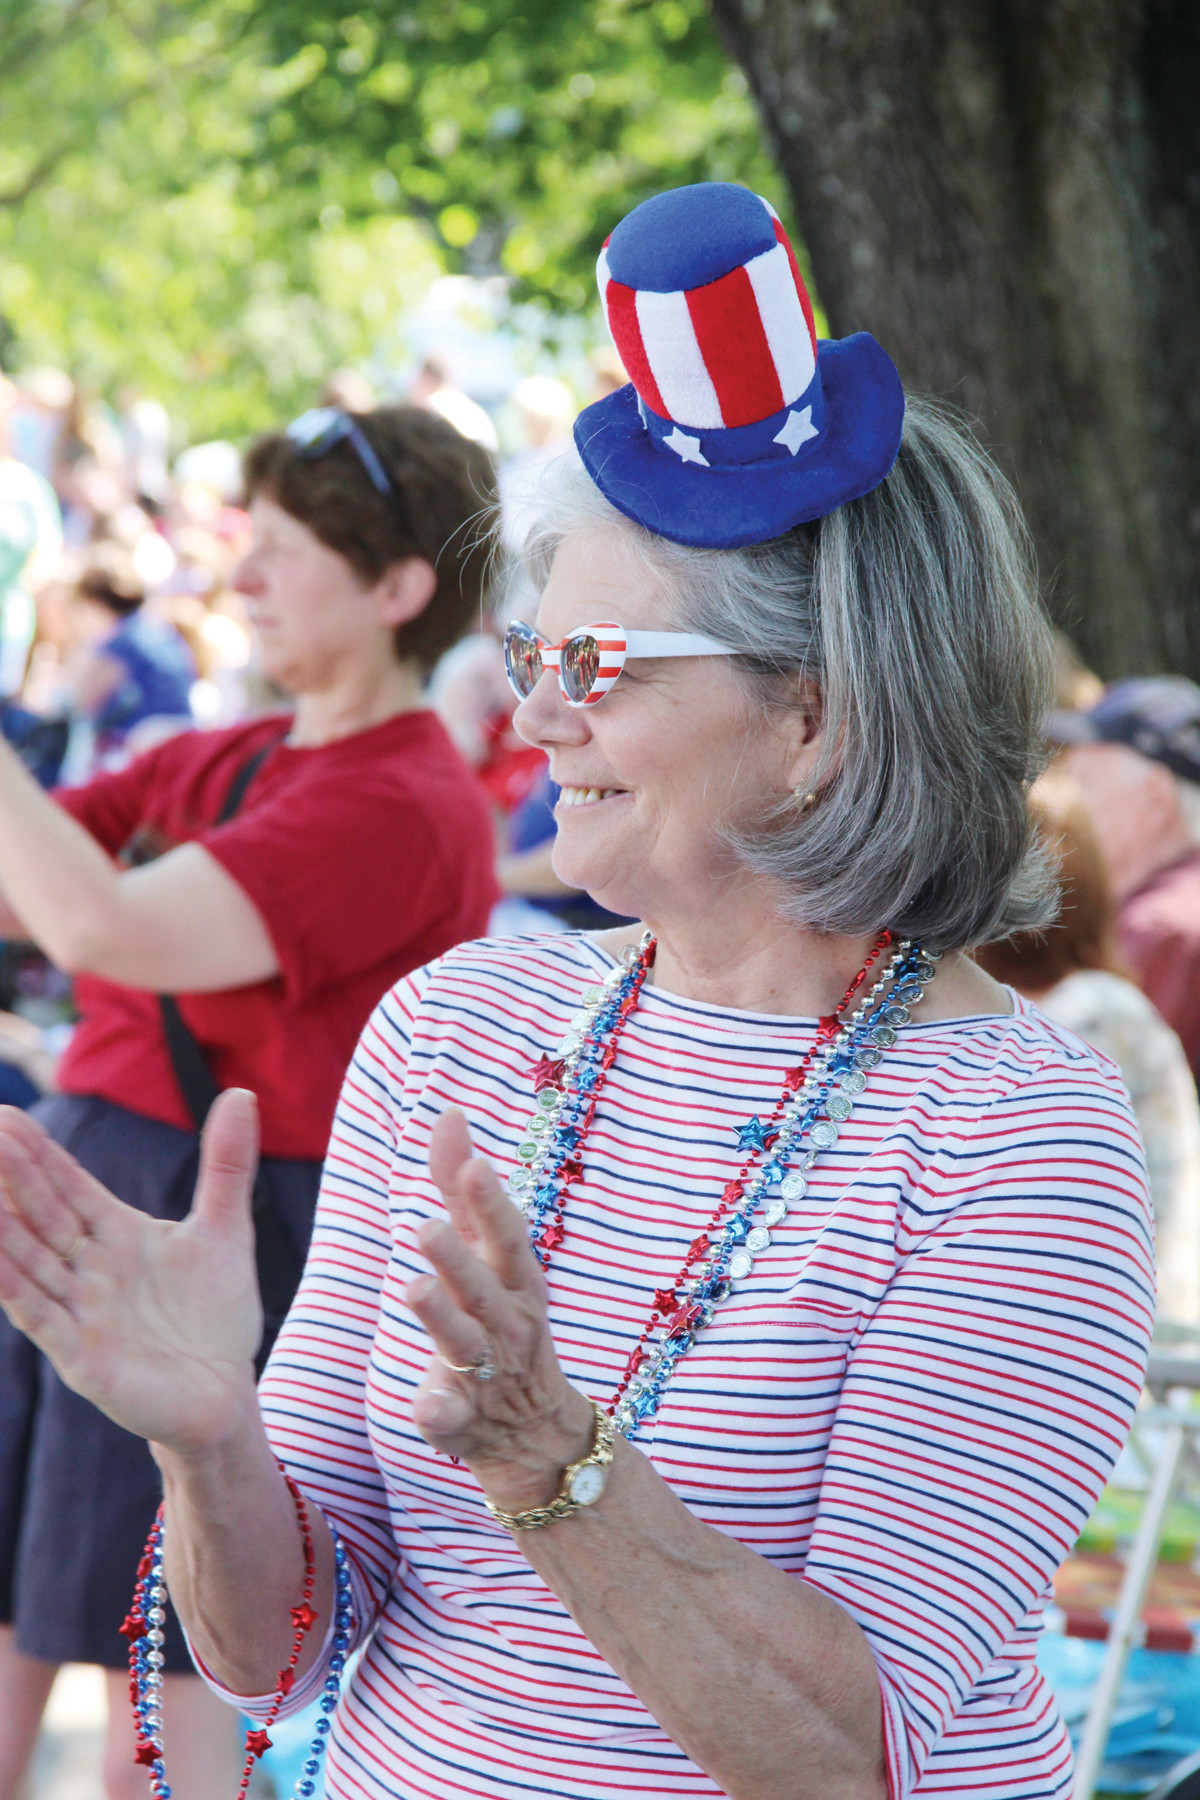 WEARING HER TOP HAT: Kathy Crowley was decked out for a parade with her patriotic hat and beads.